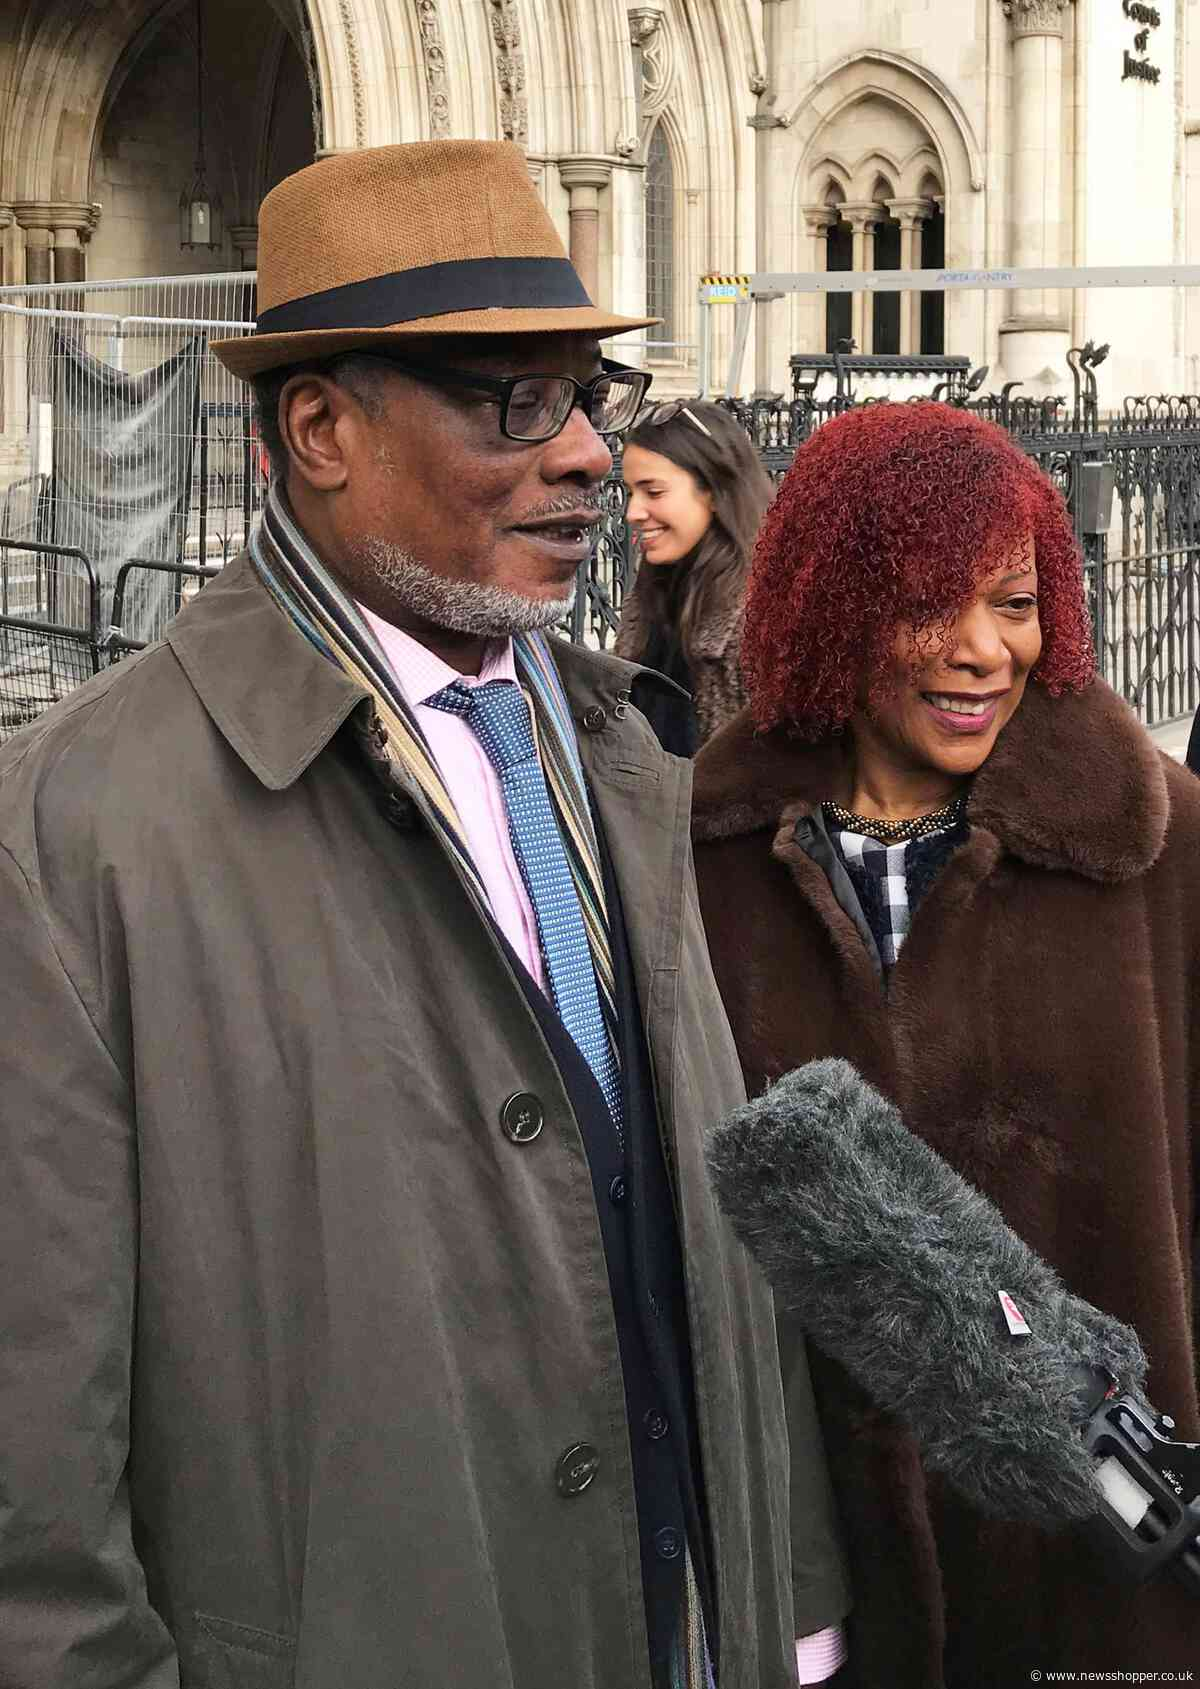 Crofton Park man wrongly convicted 50 years ago says 'don't give up'